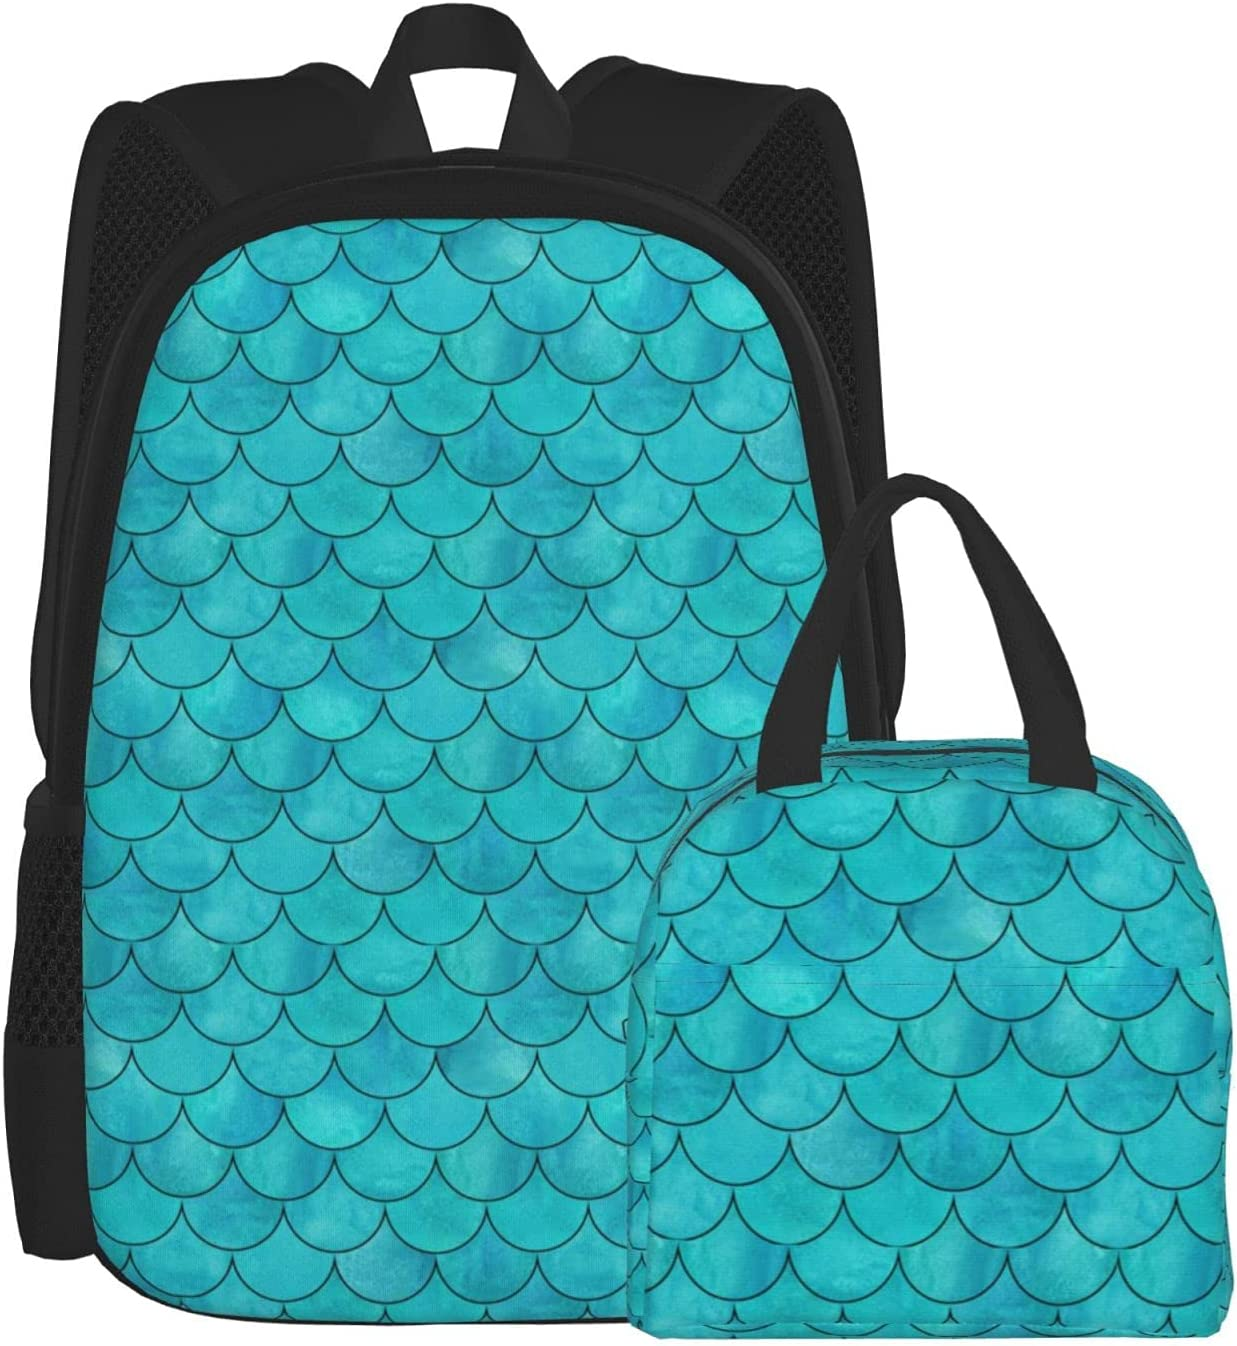 Mermaid Fresno Mall Squama Same day shipping Work Daily Backpack Casual Lunch Daypacks Ba Tote